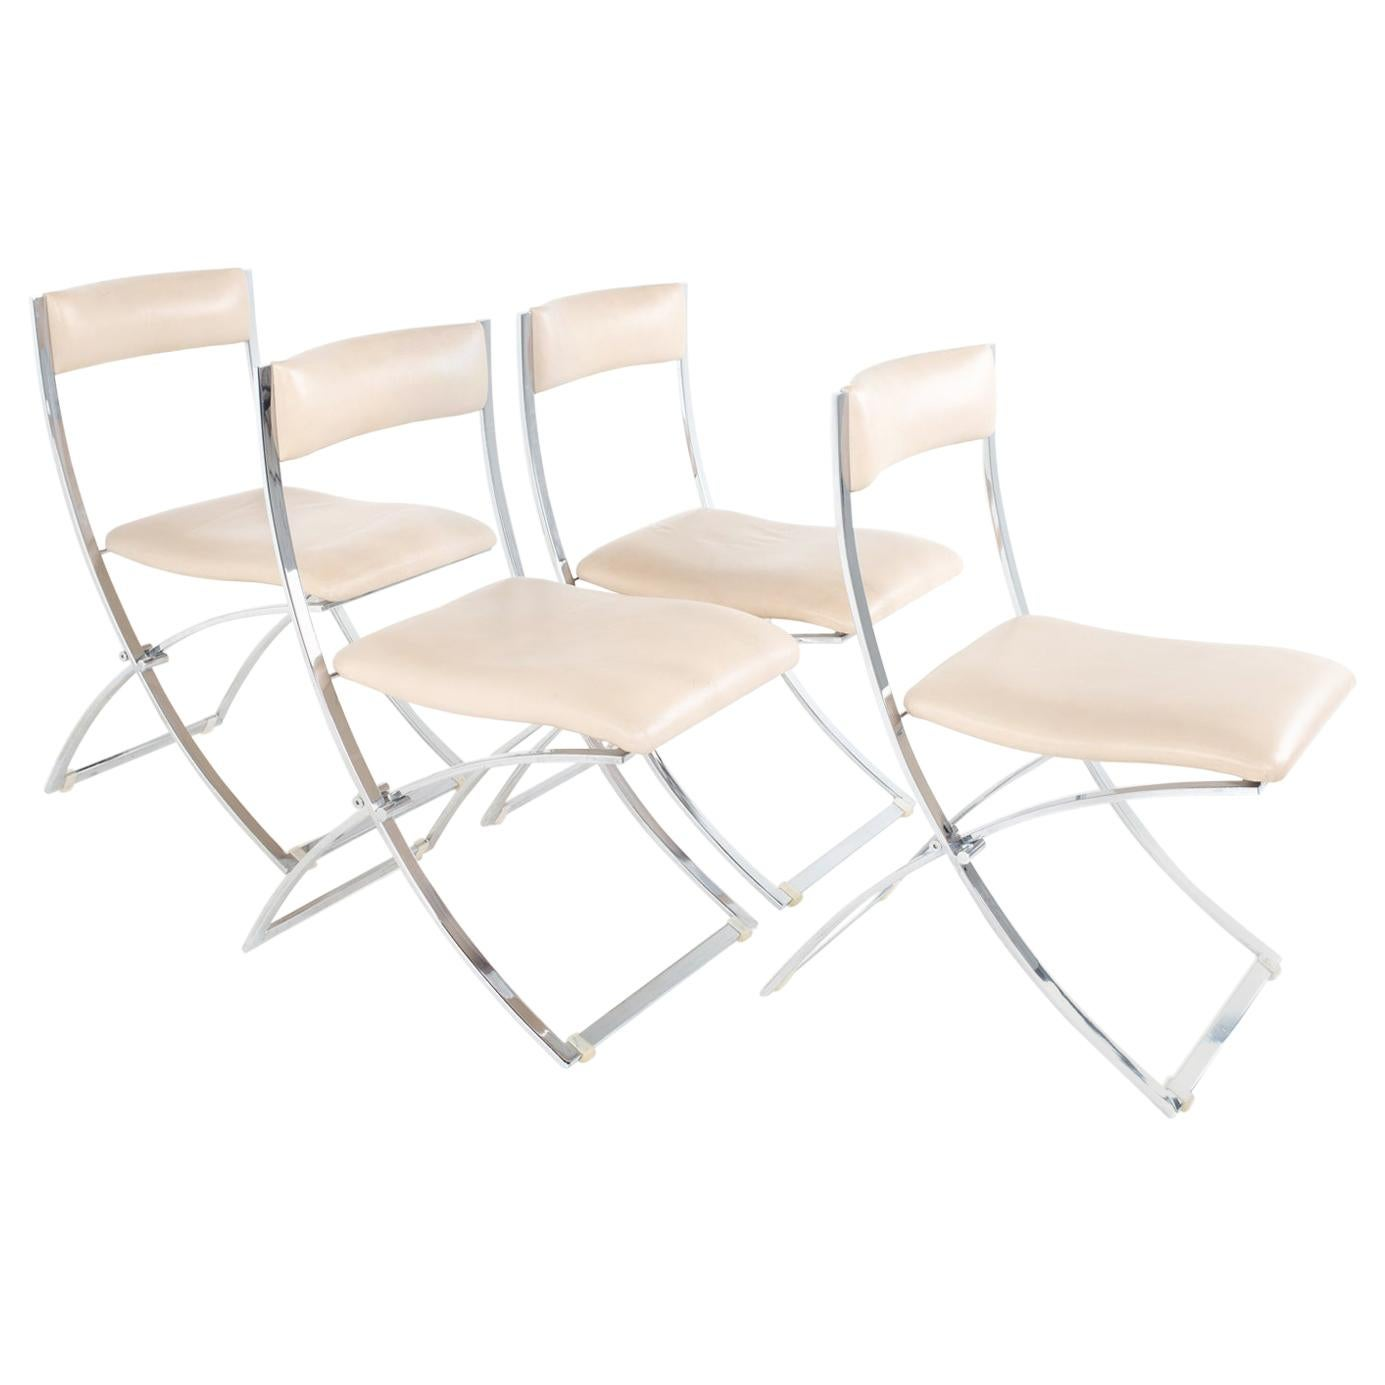 Marcello Cuneo Luisa Mid Century Chrome Folding Dining Chairs, Set of 4